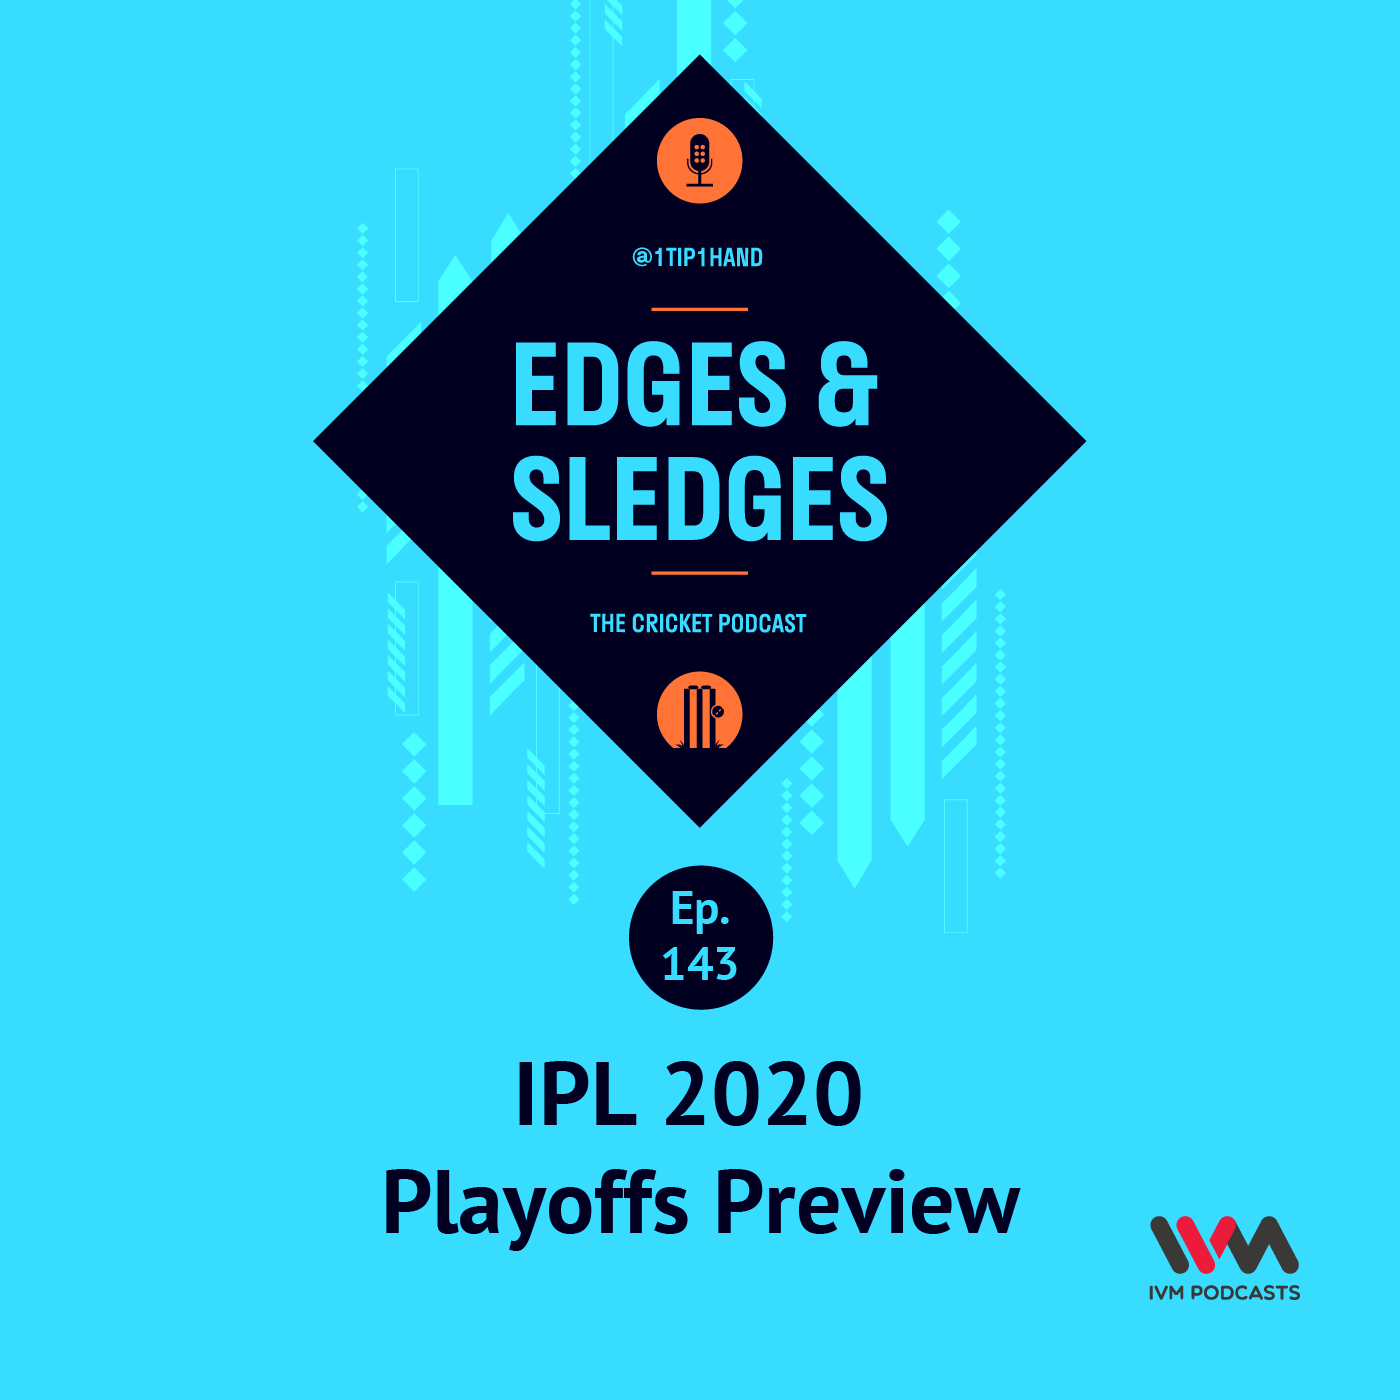 Ep. 143: IPL 2020 Playoffs Preview